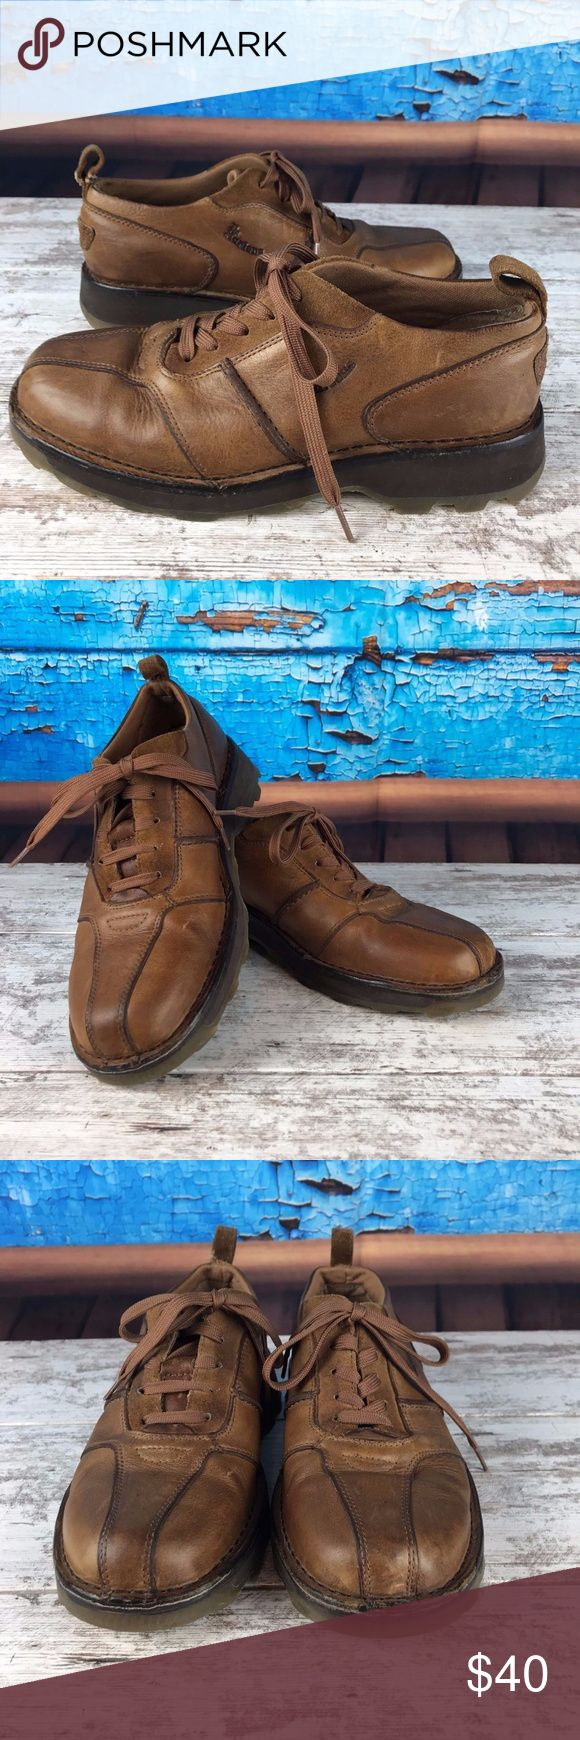 Dr Doc Martens 2B89 Brown Leather Dr Doc Martens 2B89 Brown Leather Bicycle Toe Casual Oxford Shoes Mens 8 US/UK 7 Pre-owned as shown. Dr. Martens Shoes Oxfords & Derbys